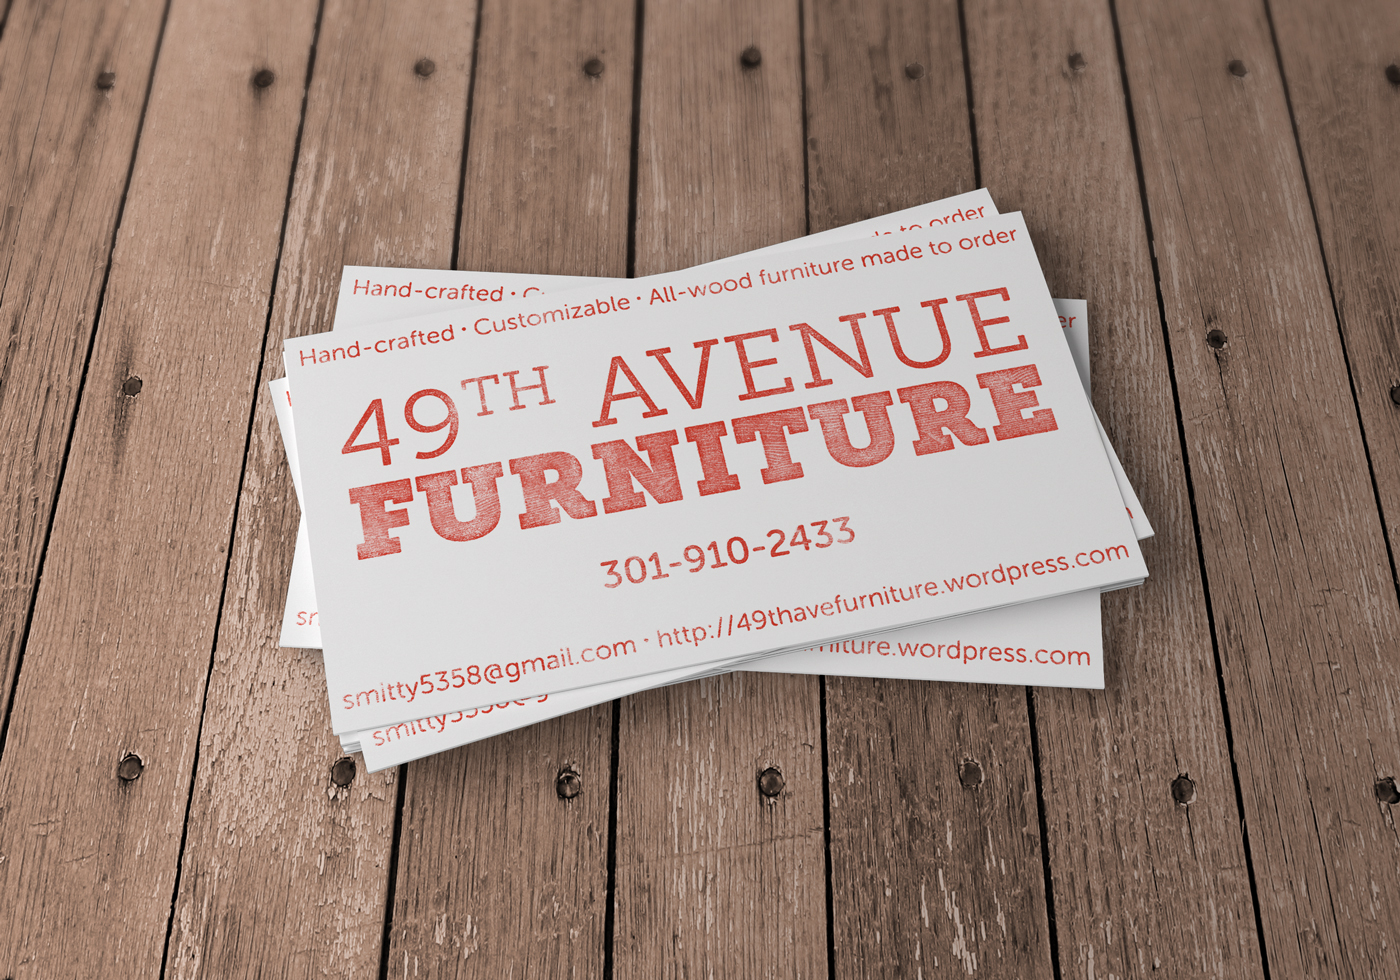 49th Avenue Furniture Business Card